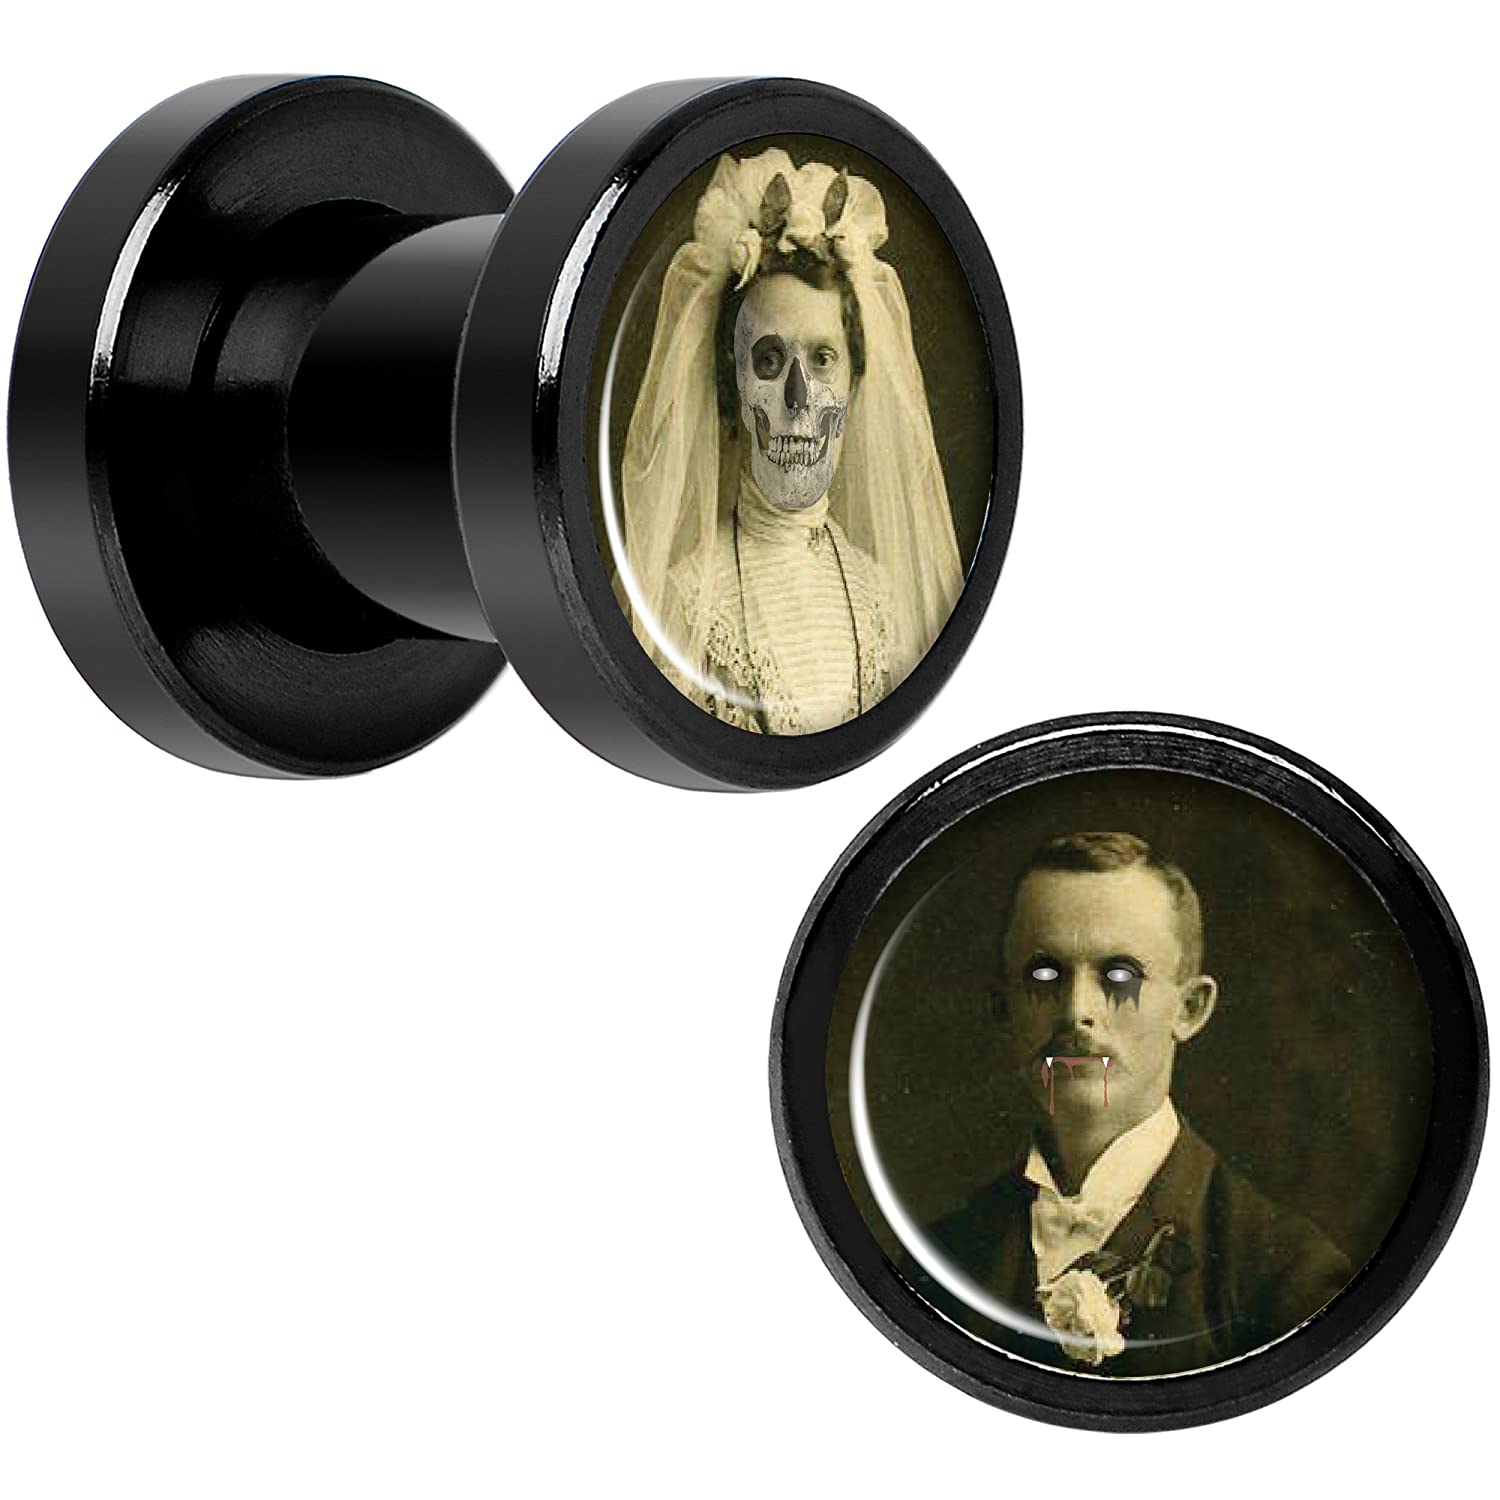 Body Candy Black Anodized Titanium Steel Undead Bride and Groom Halloween Plug Set of 2 5mm to 20mm CUPS-BK-844-8